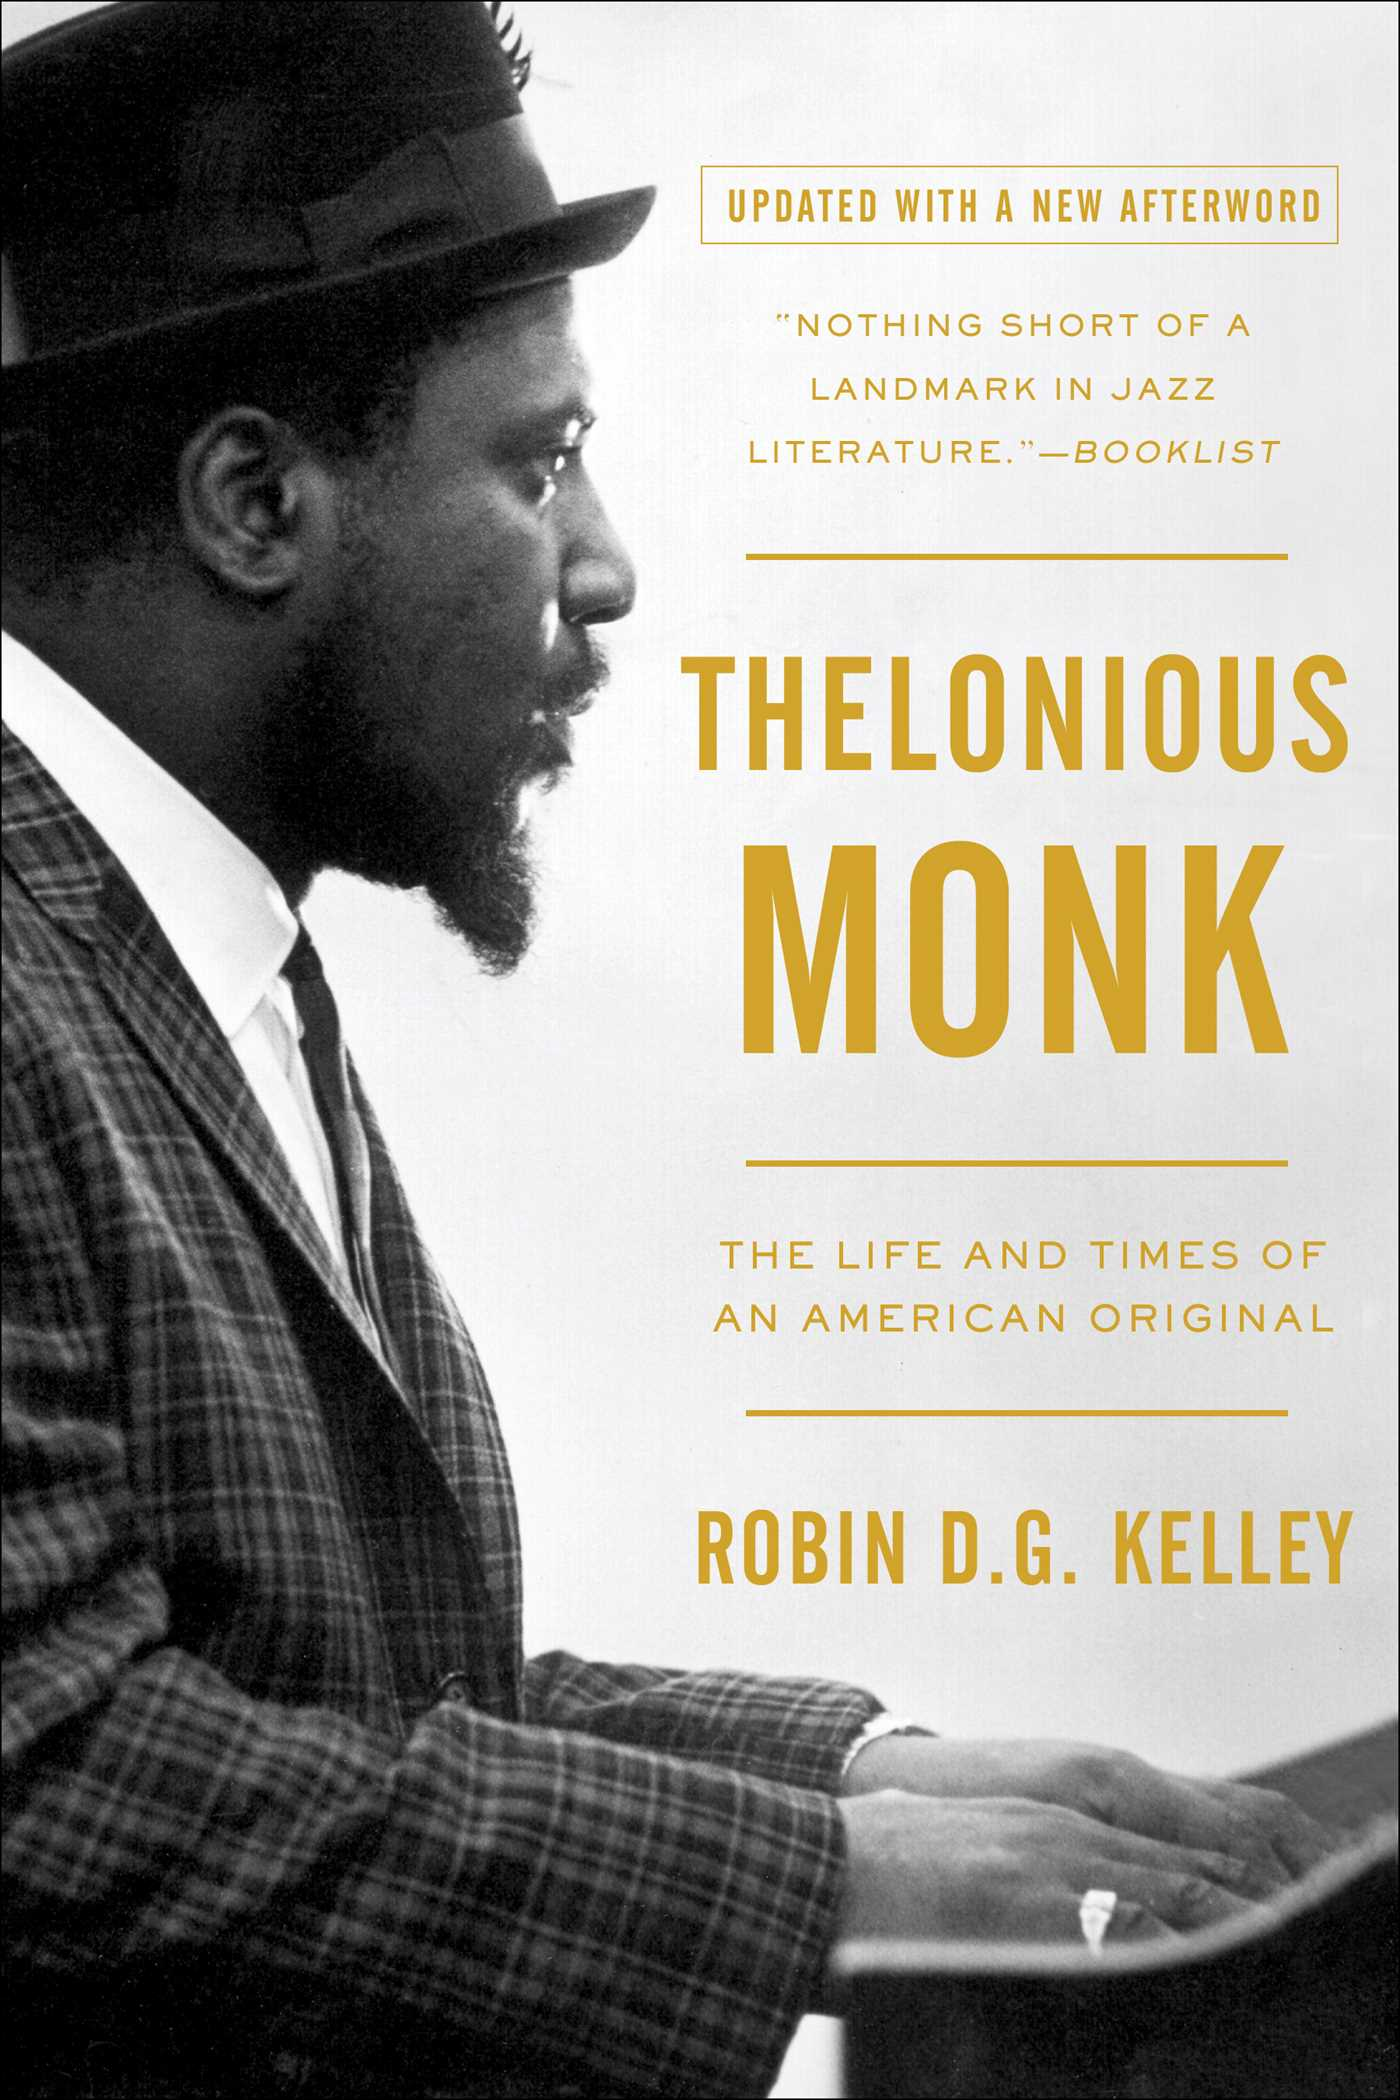 Thelonious monk 9781439190463 hr